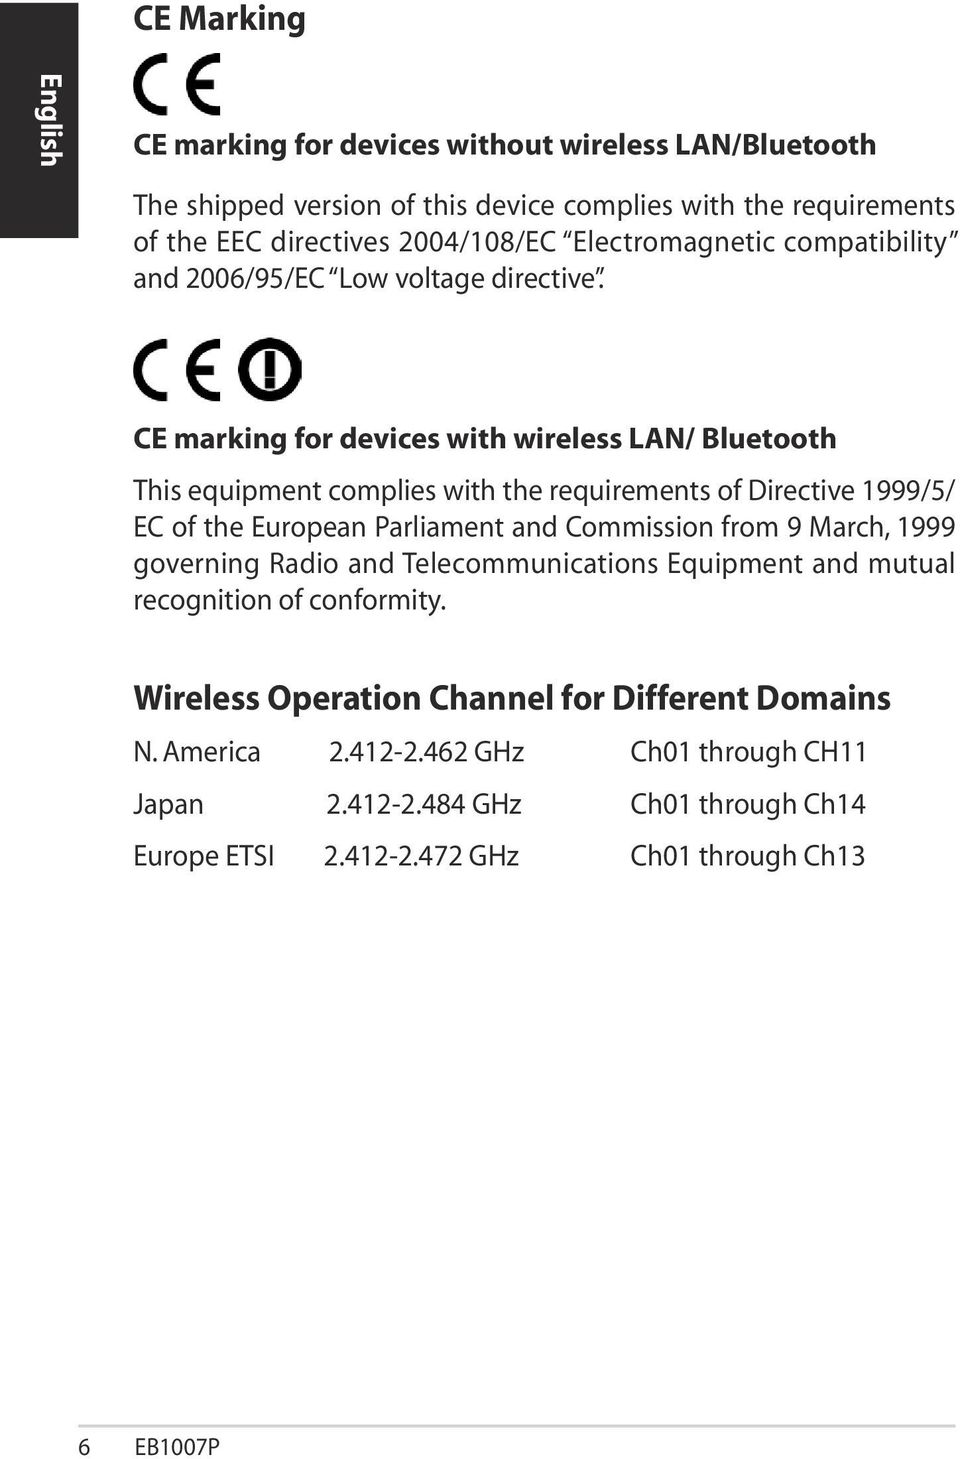 CE marking for devices with wireless LAN/ Bluetooth This equipment complies with the requirements of Directive 1999/5/ EC of the European Parliament and Commission from 9